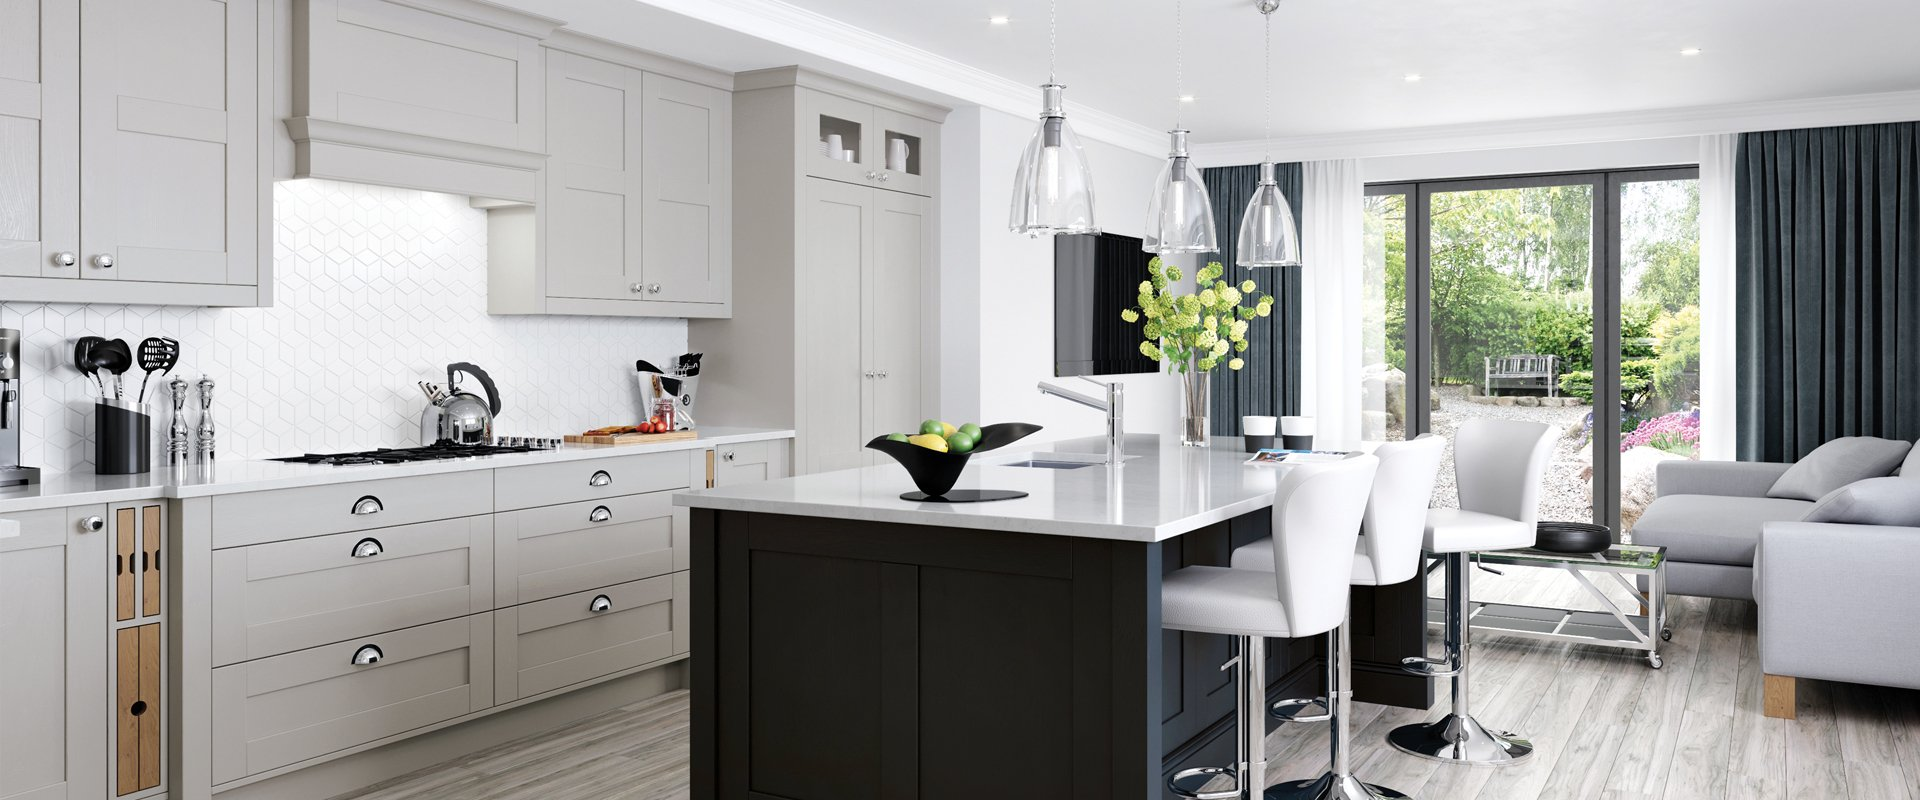 Timeless Elegance - Kitchen Design hertfordshire